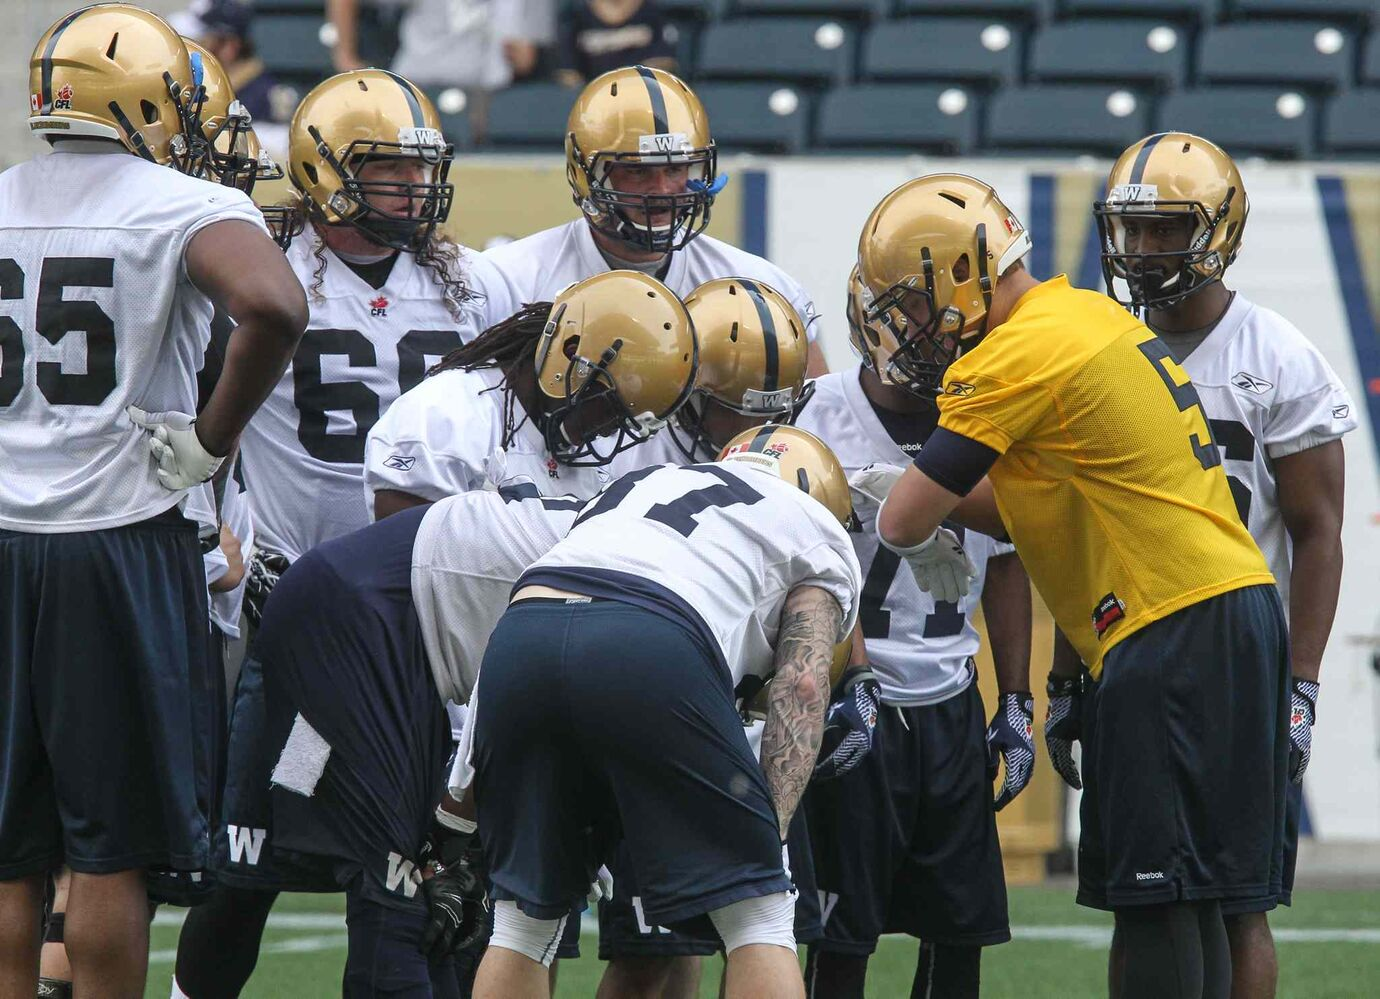 Quarterback Drew Willy (in yellow jersey) in the huddle during the first official day of the Winnipeg Blue Bombers training camp at Investors Group Field Sunday morning. (MIKE DEAL / WINNIPEG FREE PRESS)